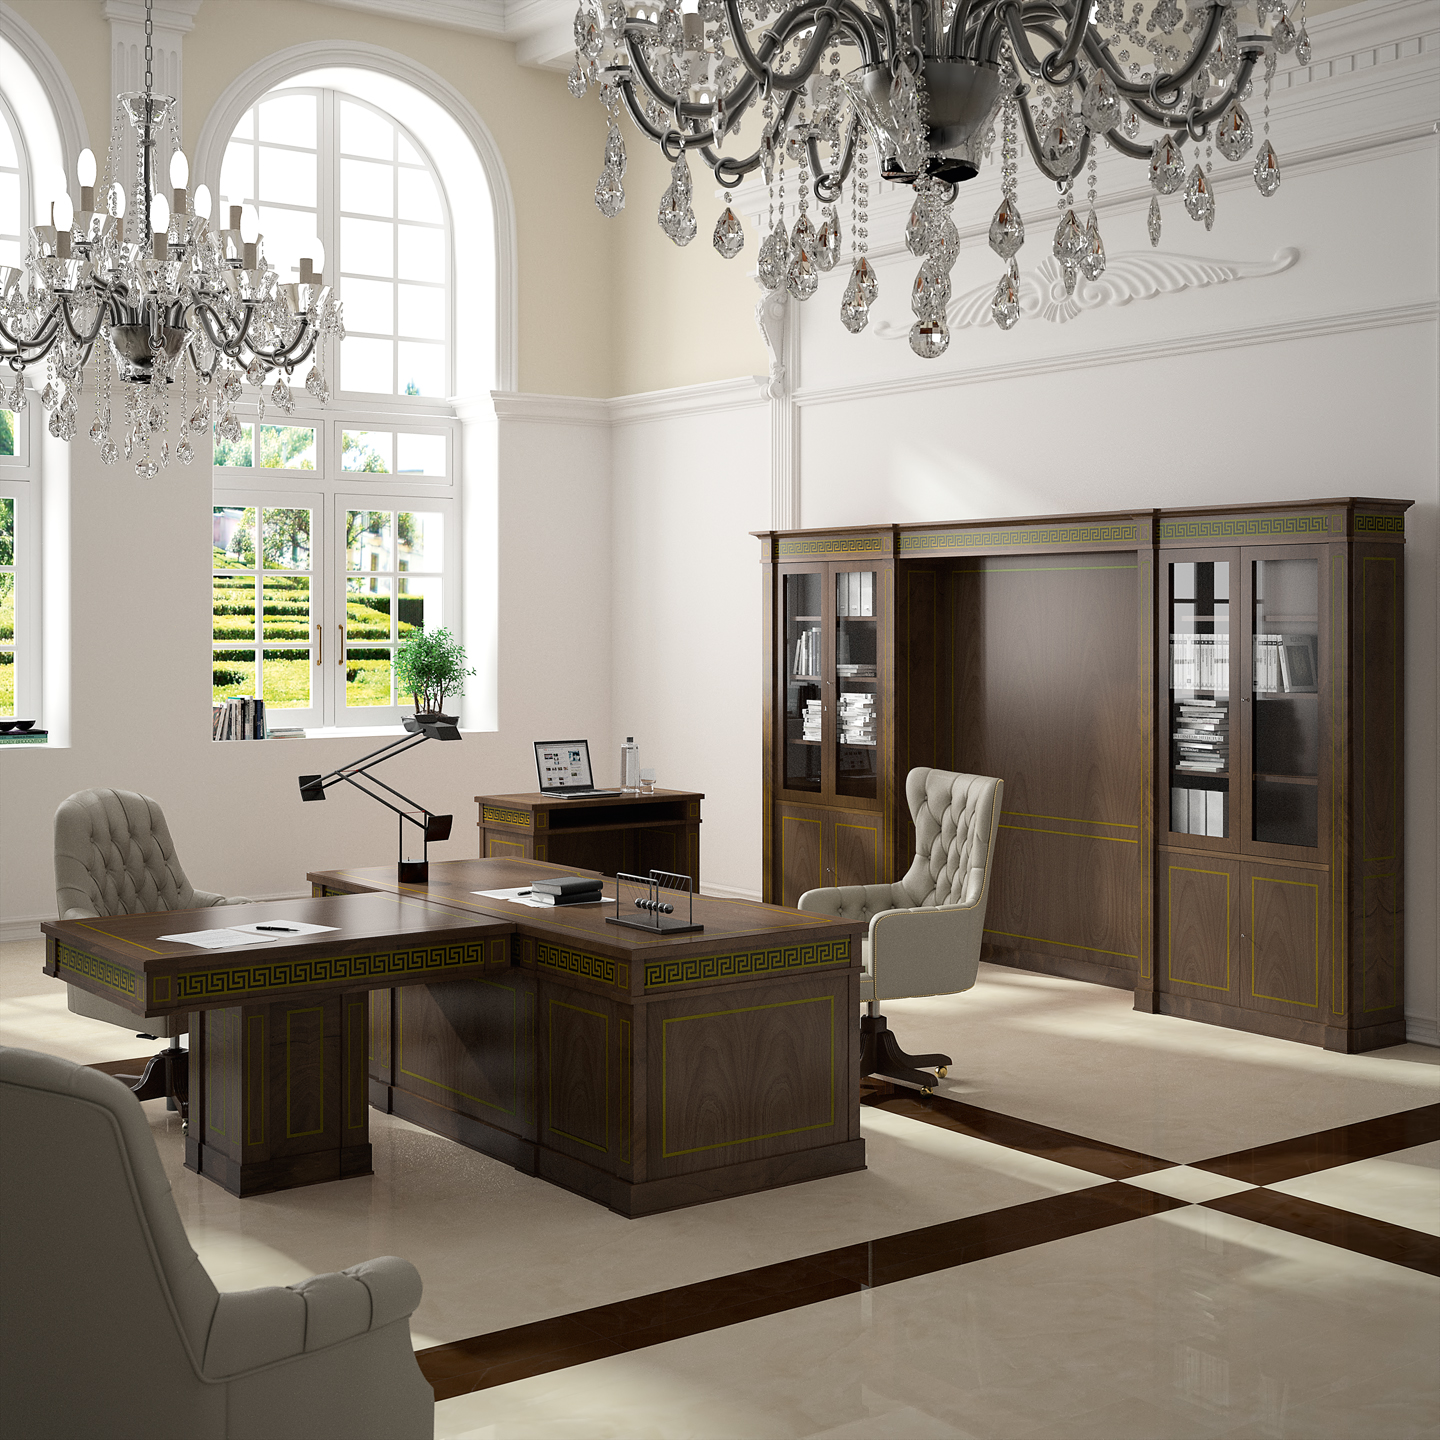 Art luxe from ofifran the refined choice for your office for Fotos de oficinas modernas